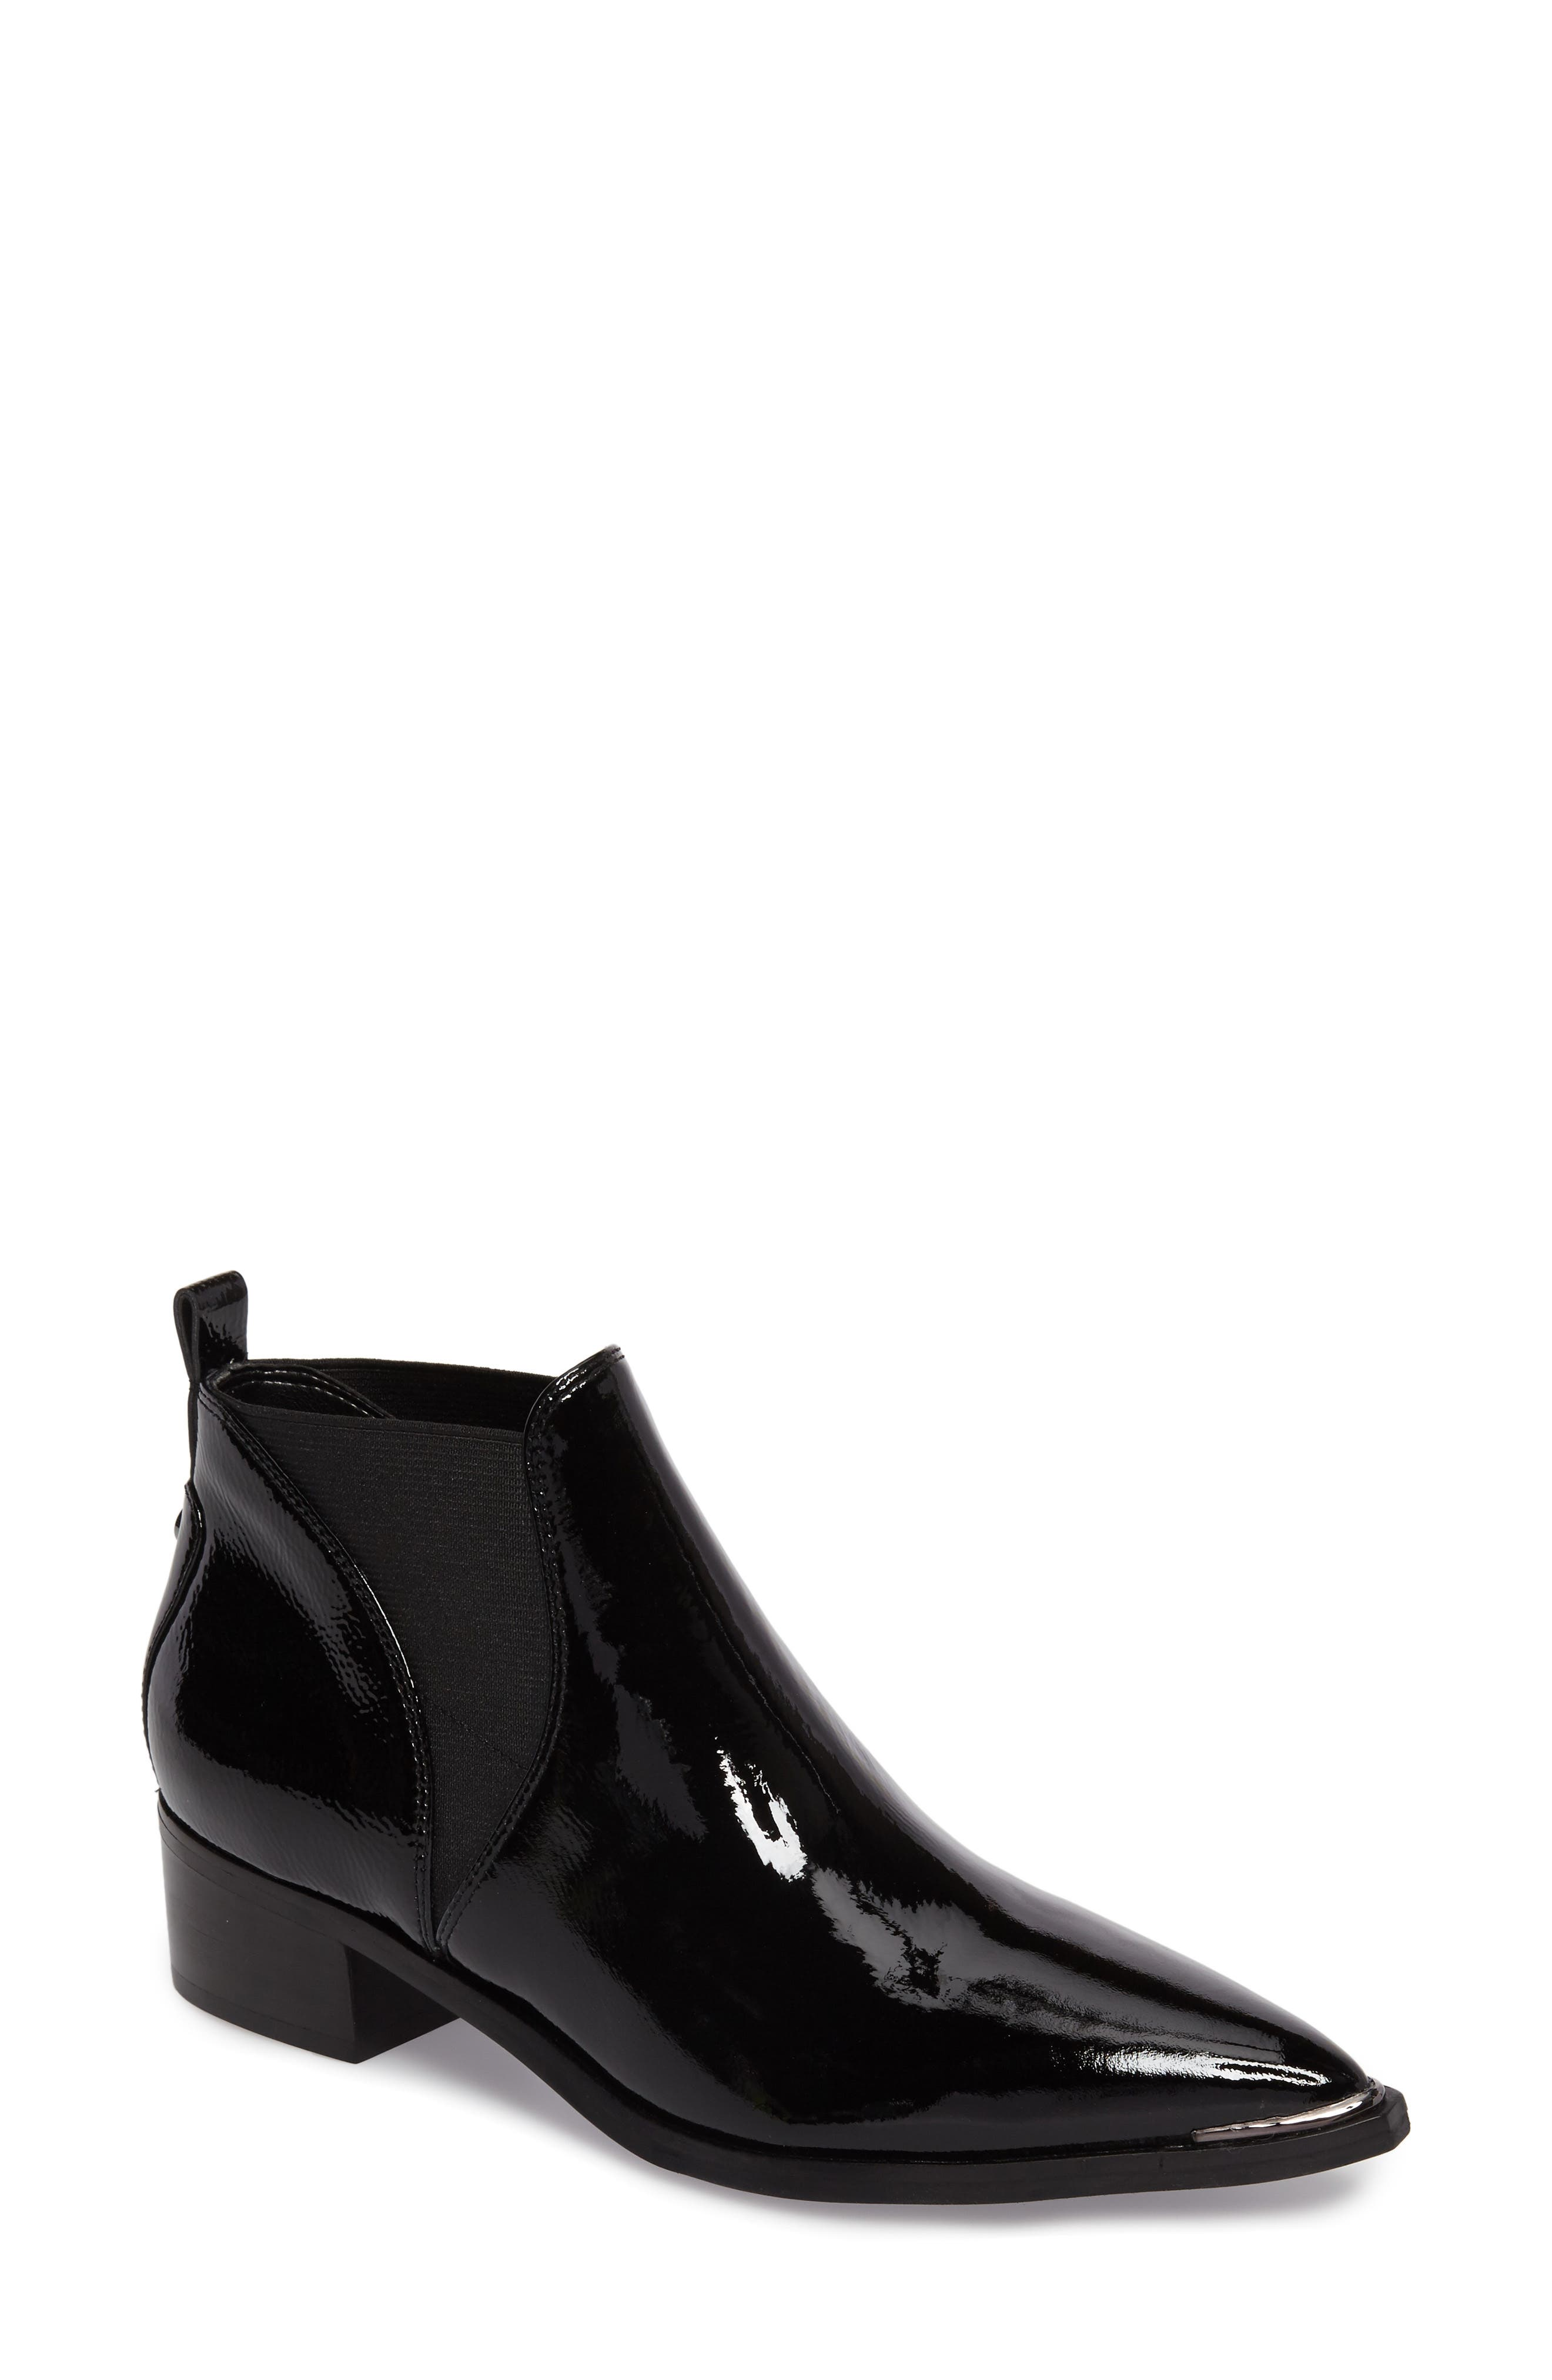 Yellin Pointy Toe Chelsea Boot,                         Main,                         color, Black Patent Leather